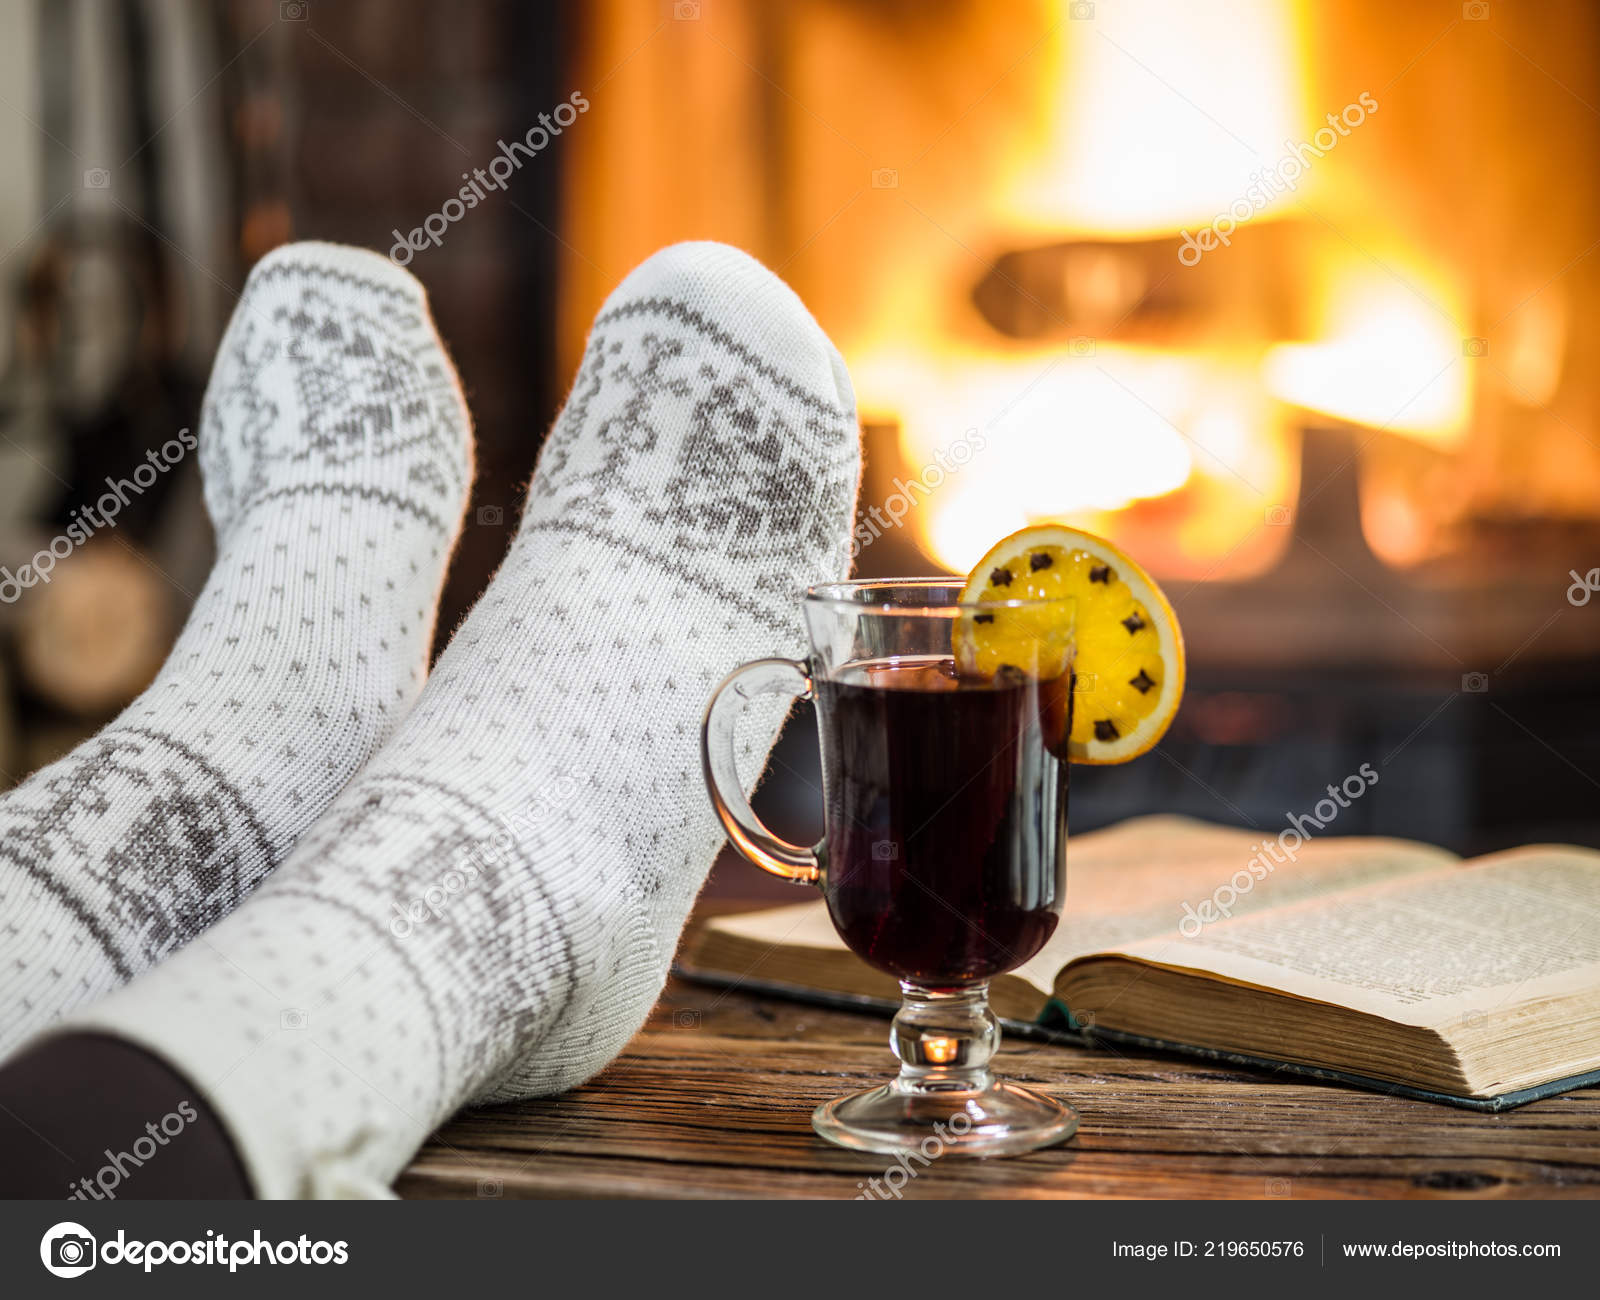 Warming Relaxing Fireplace Woman Feet Cup Hot Wine Book